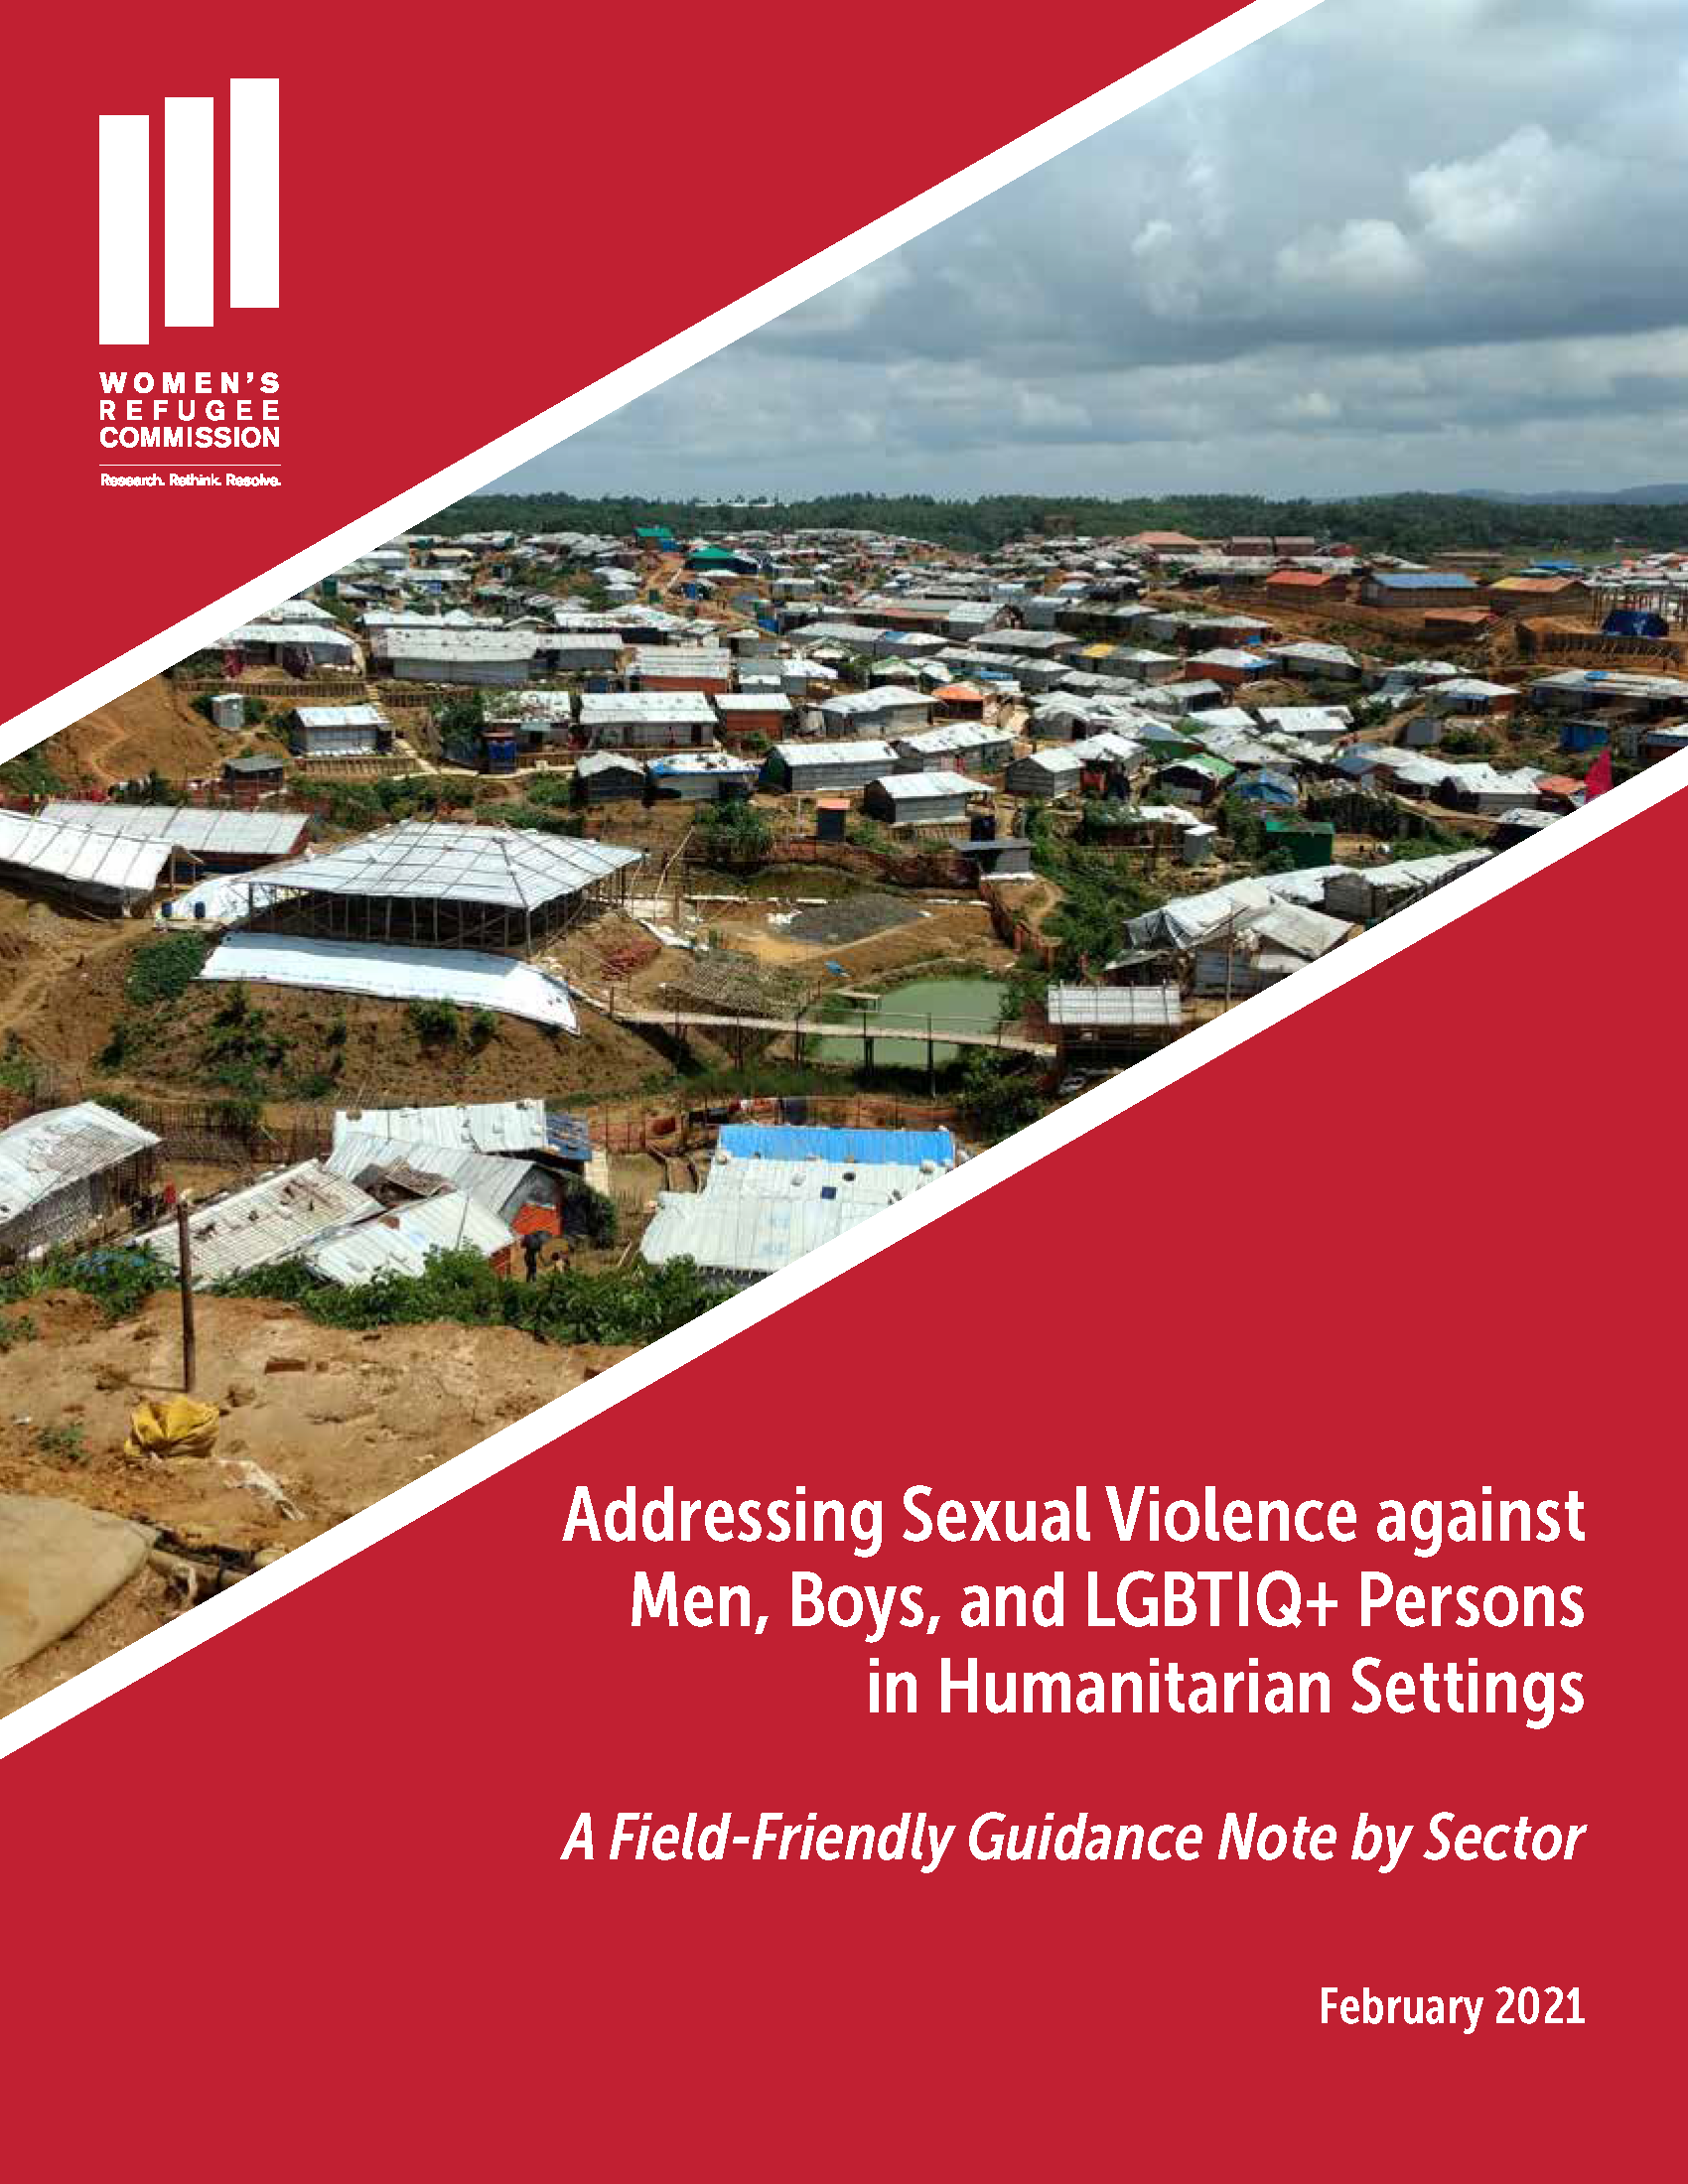 Addressing Sexual Violence against Men, Boys, and LGBTQI+ Persons in Humanitarian Settings Guidance Note Cover Image